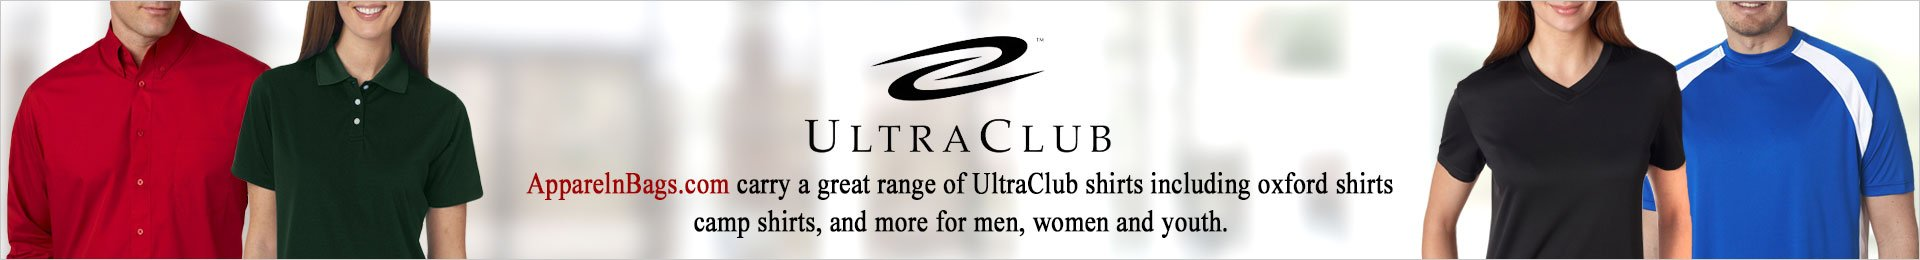 UltraClub